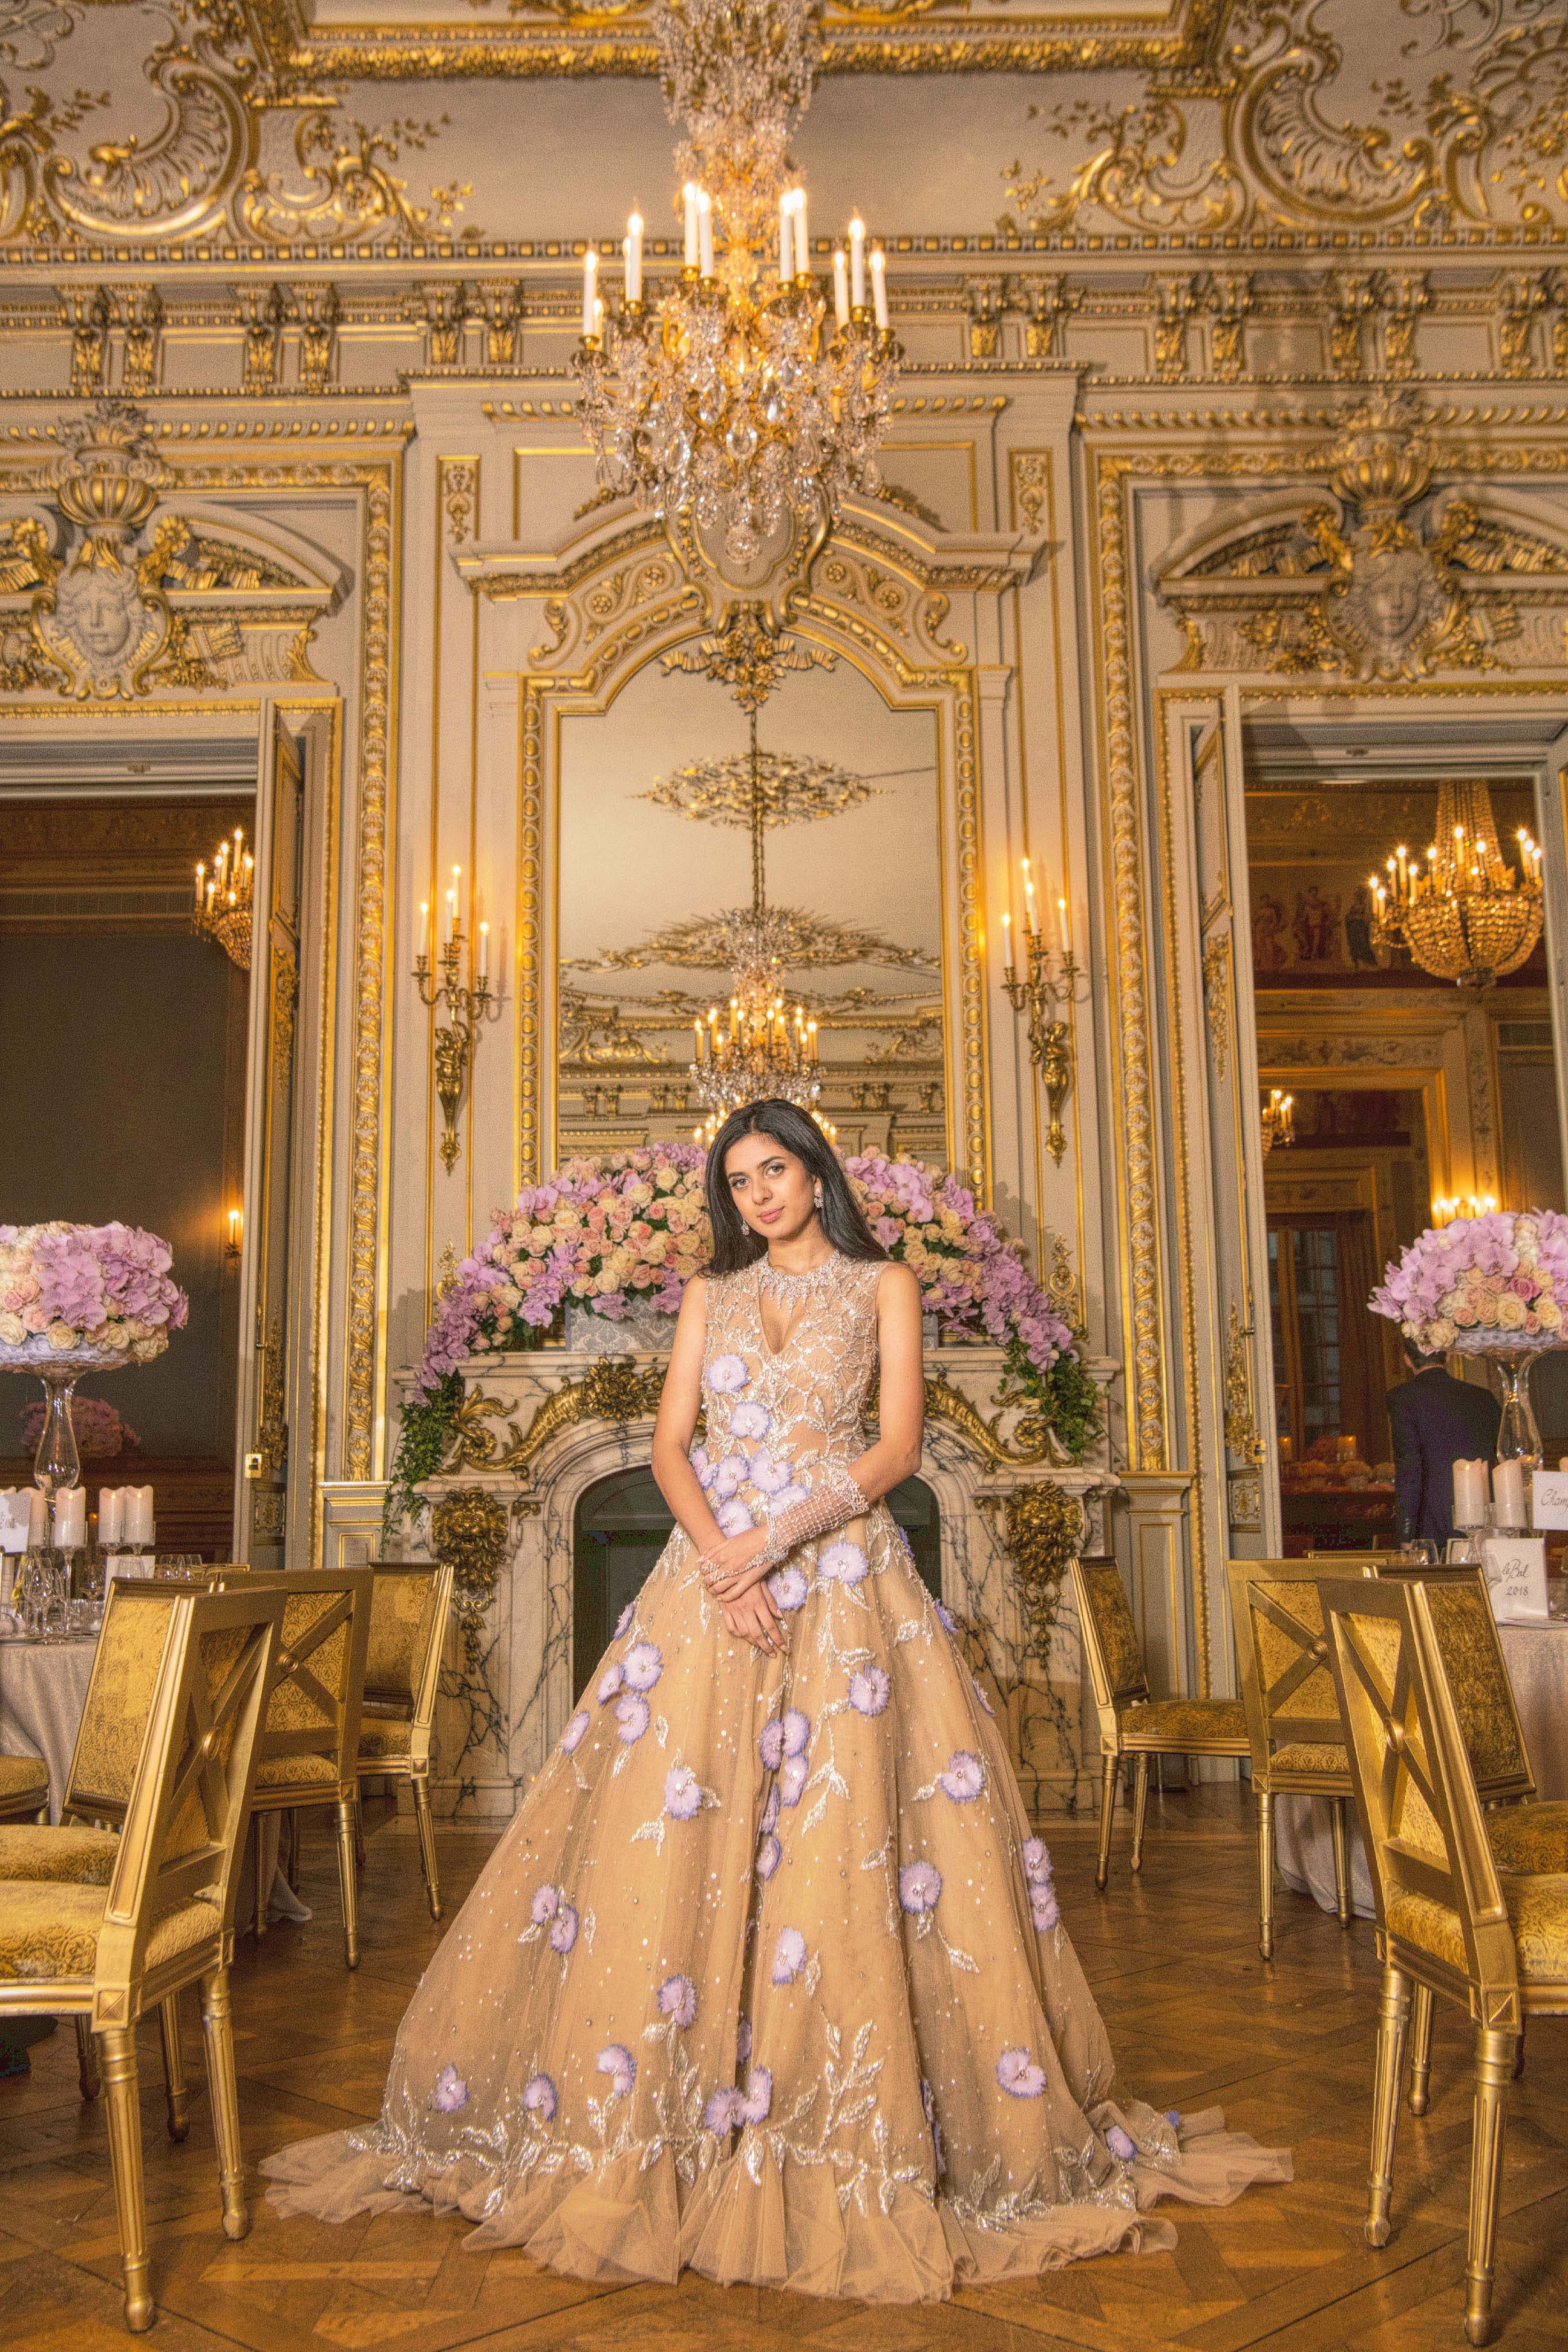 Aria Mehta in Georges Hobeika Couture and jewellery by Payal New York. Images: Courtesy Yunling Fang